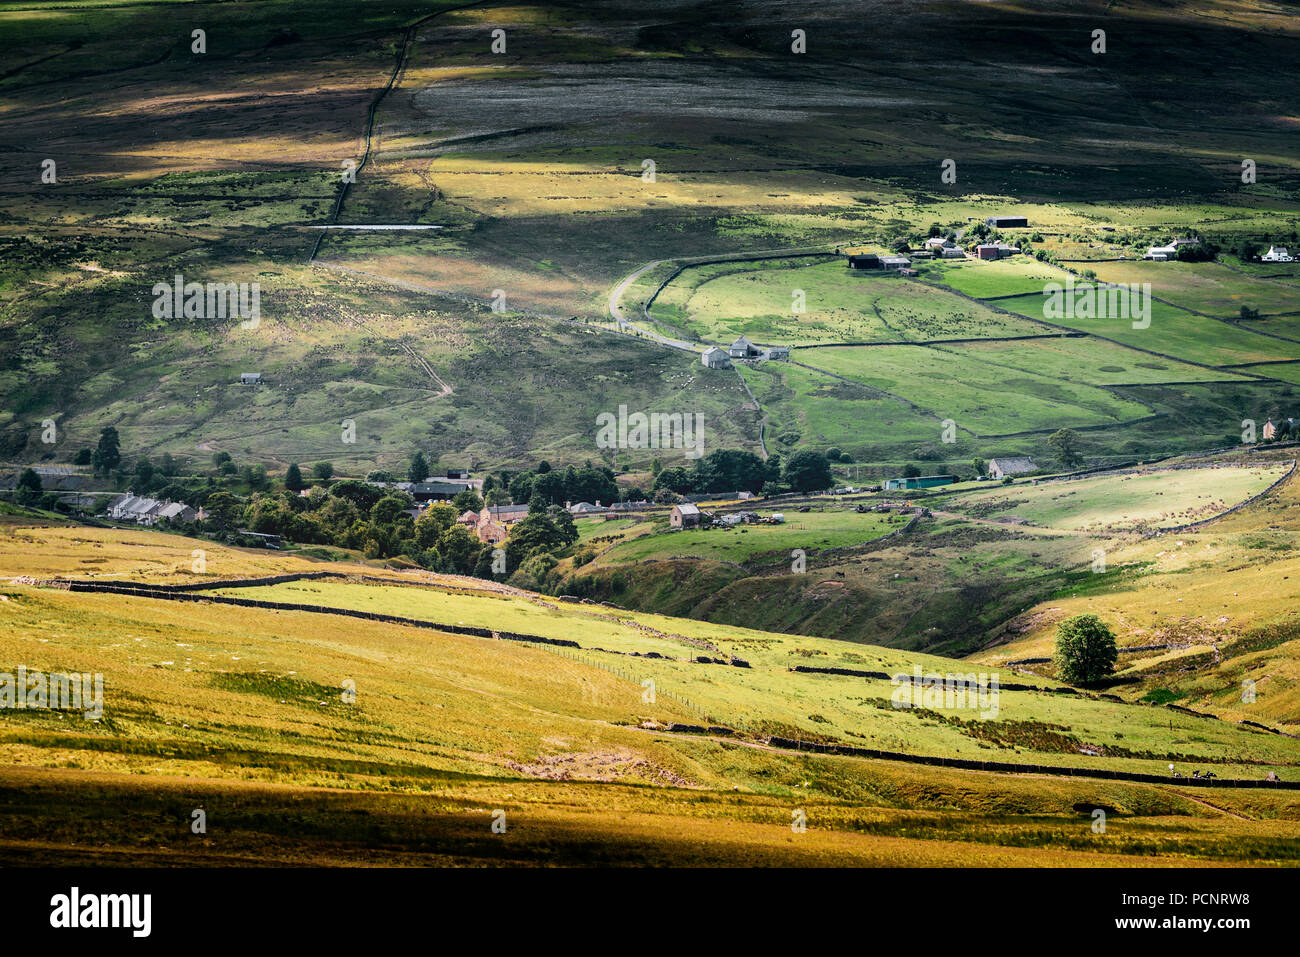 View from Bolt's Law of Rookhope a remote village in the County Durham section of the North Pennines - Stock Image